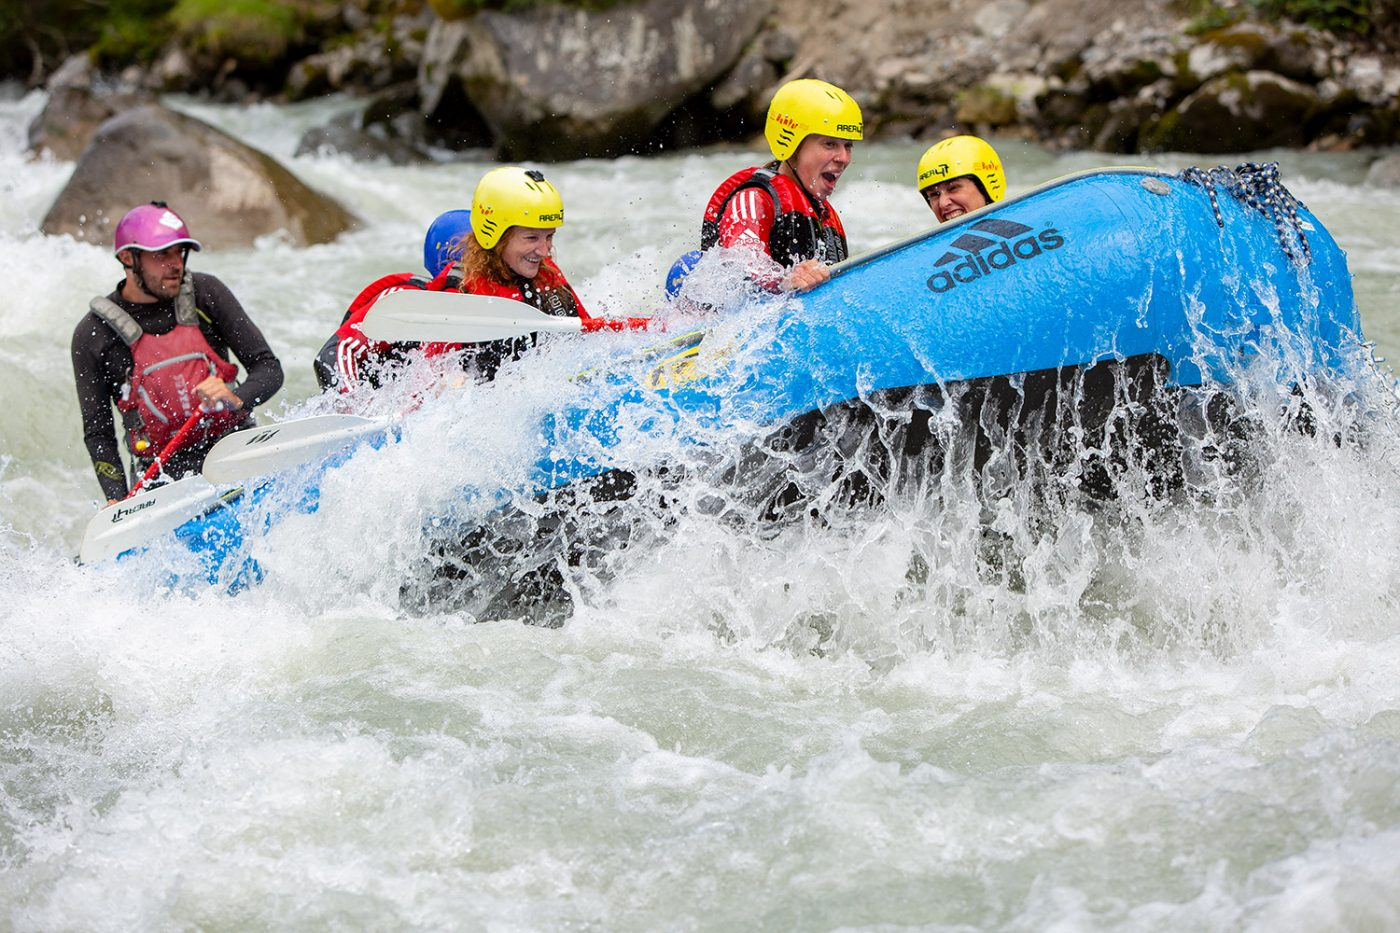 Rafting action in Tirol